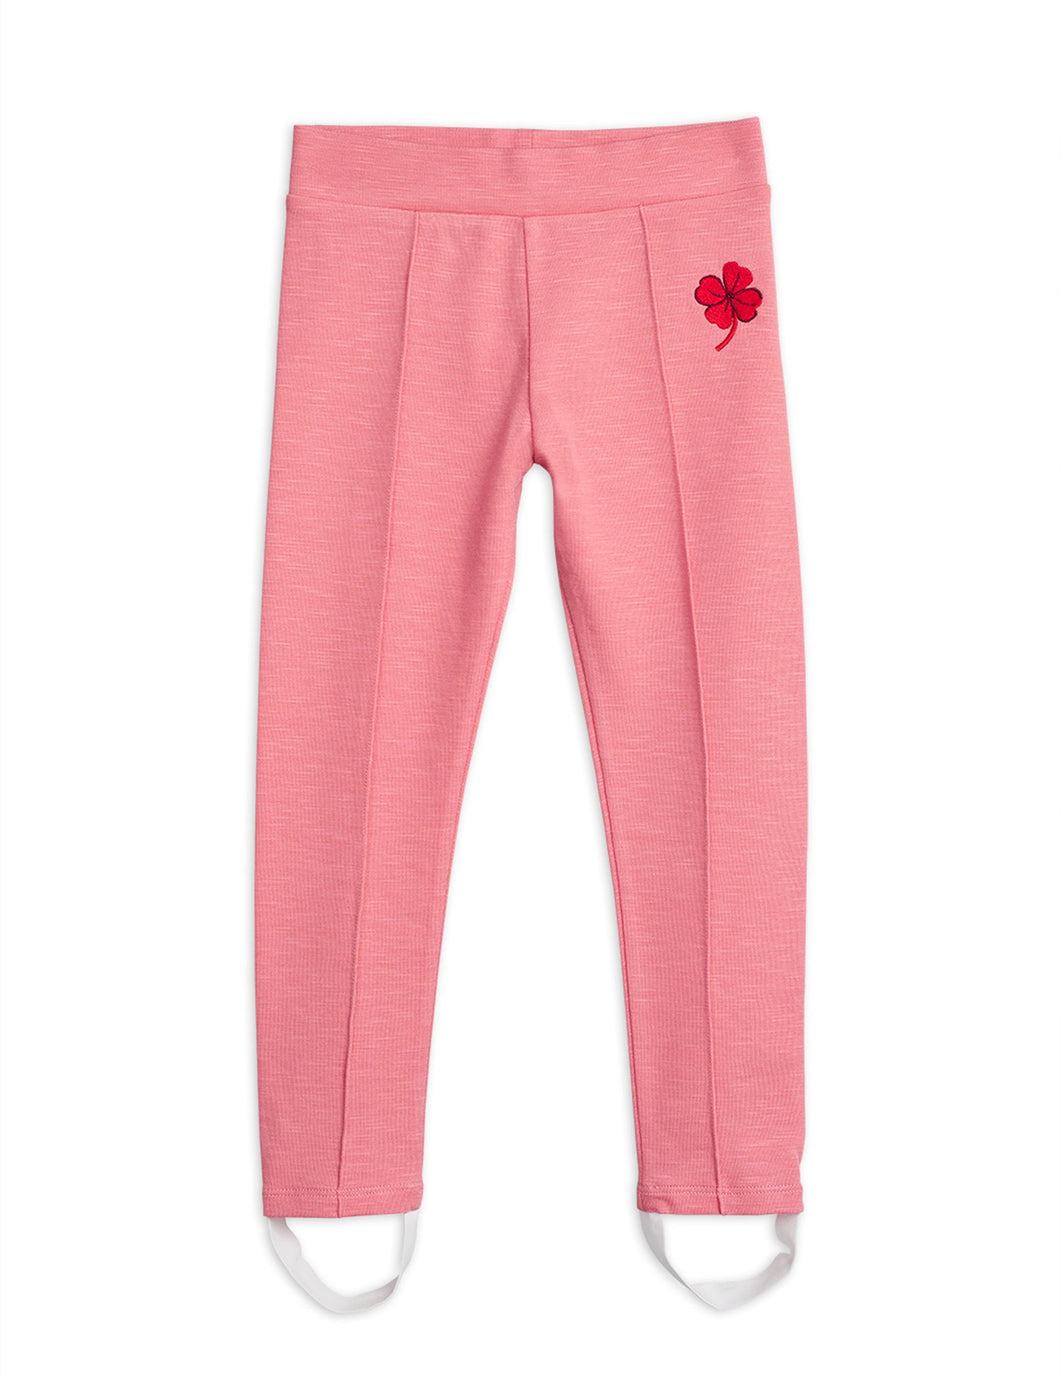 Mini Rodini Clover Embroidered Leggings // Pink